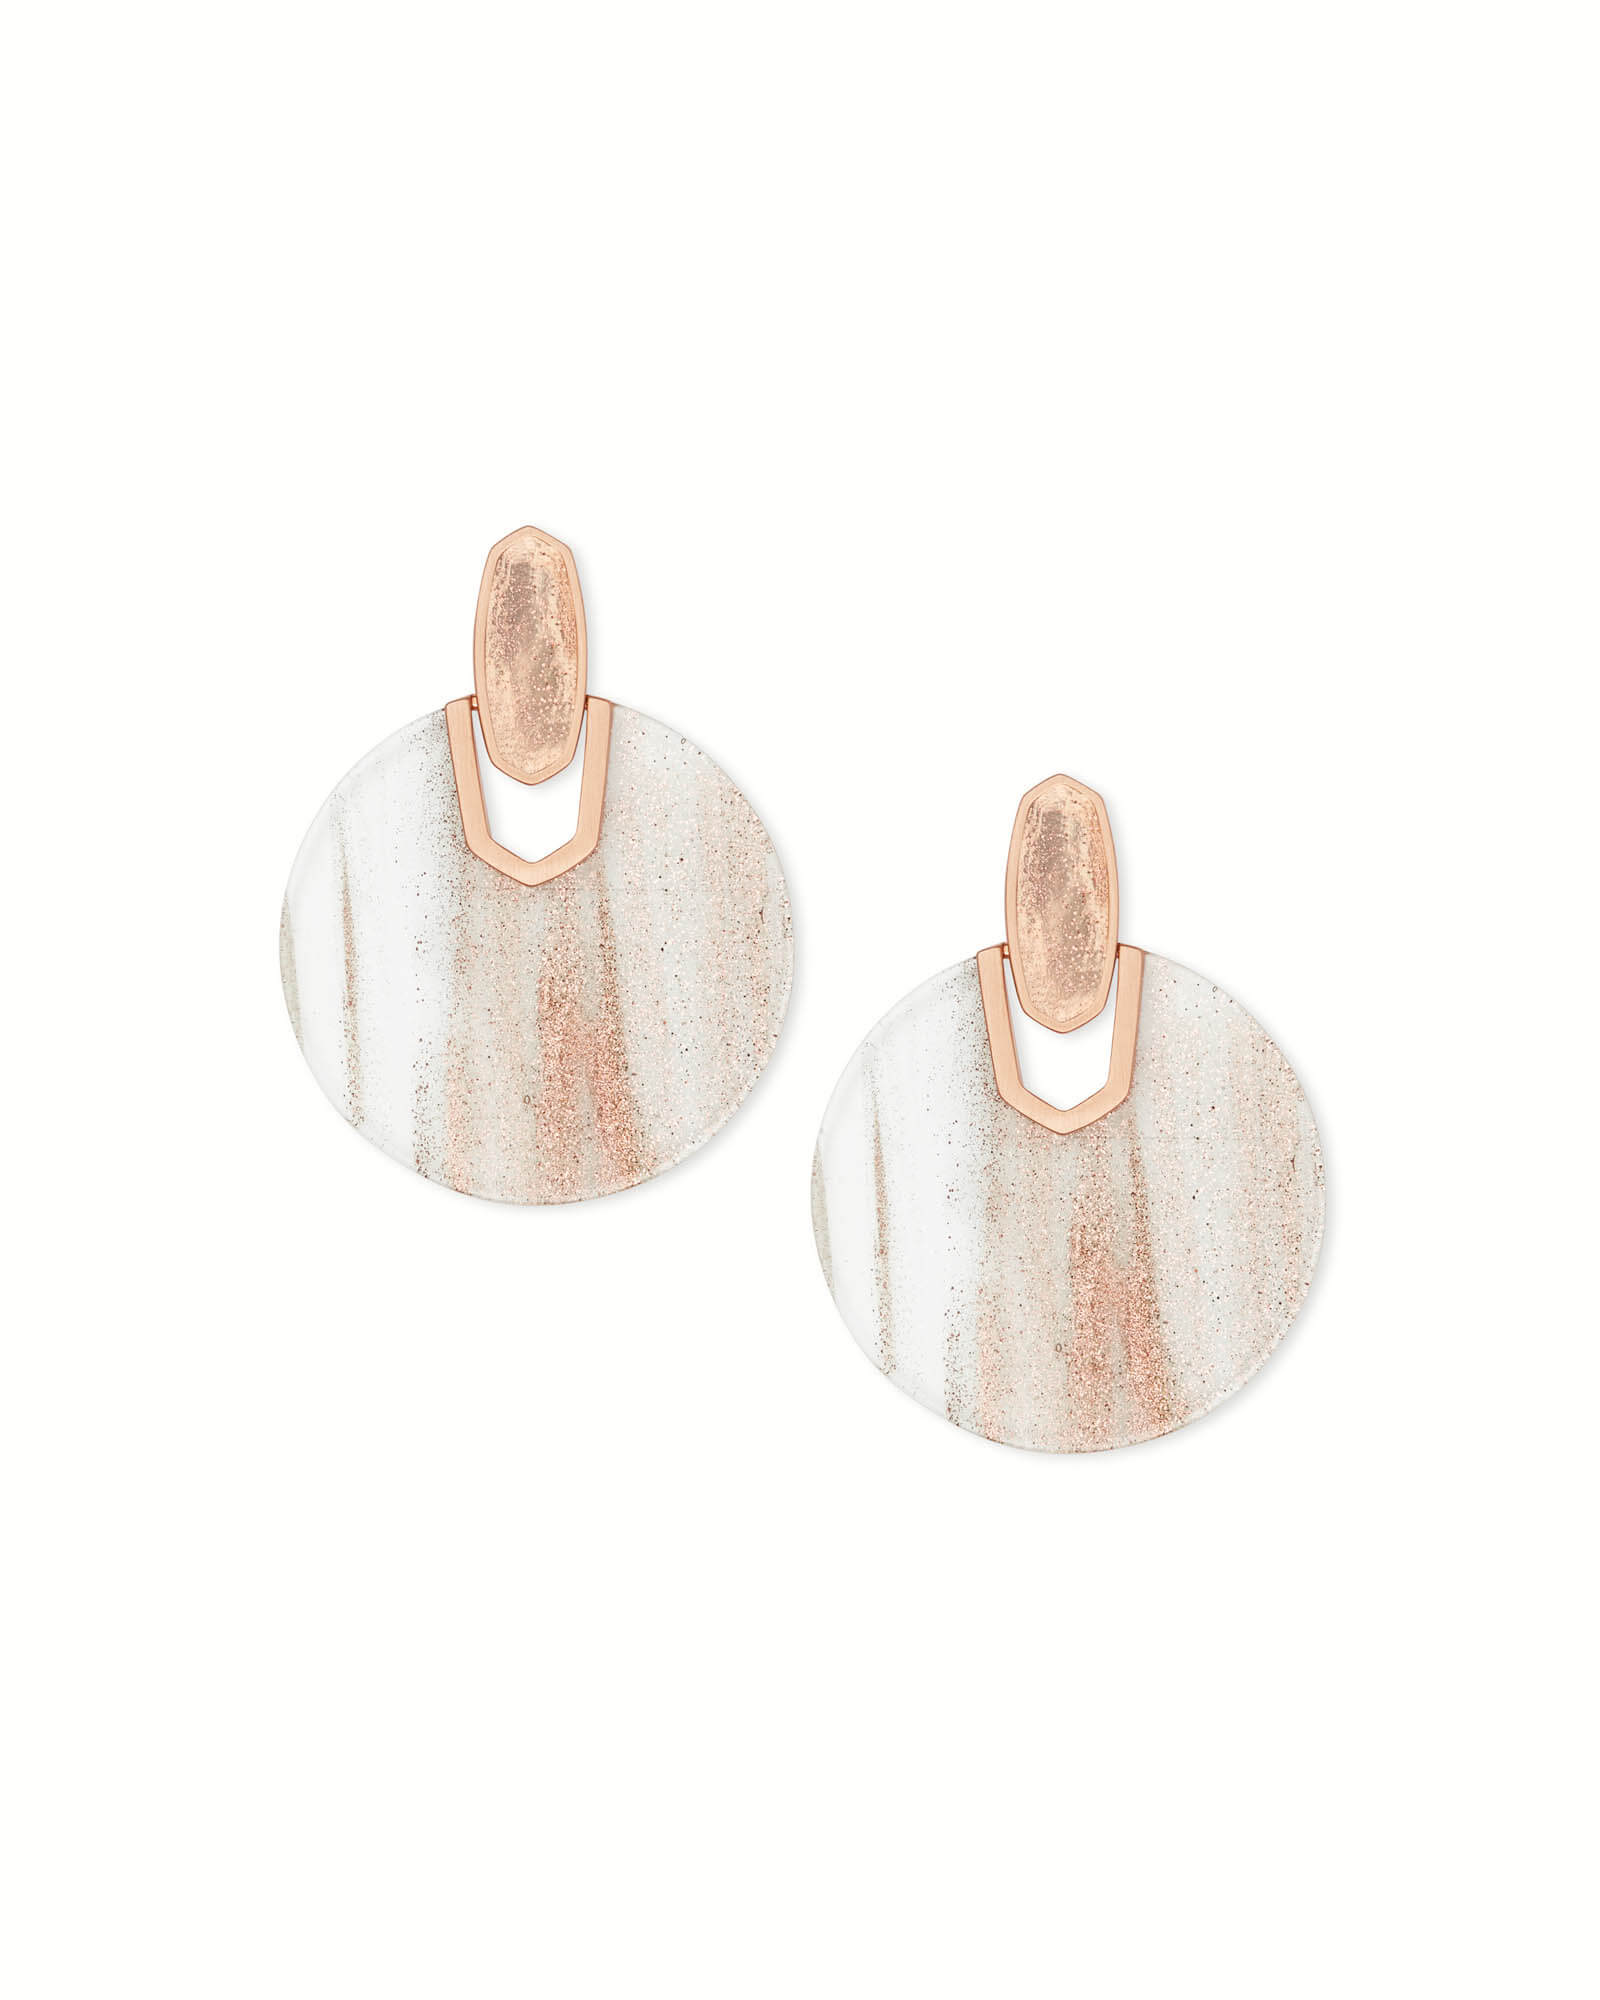 Didi Rose Gold Statement Earrings in Gold Dusted Glass